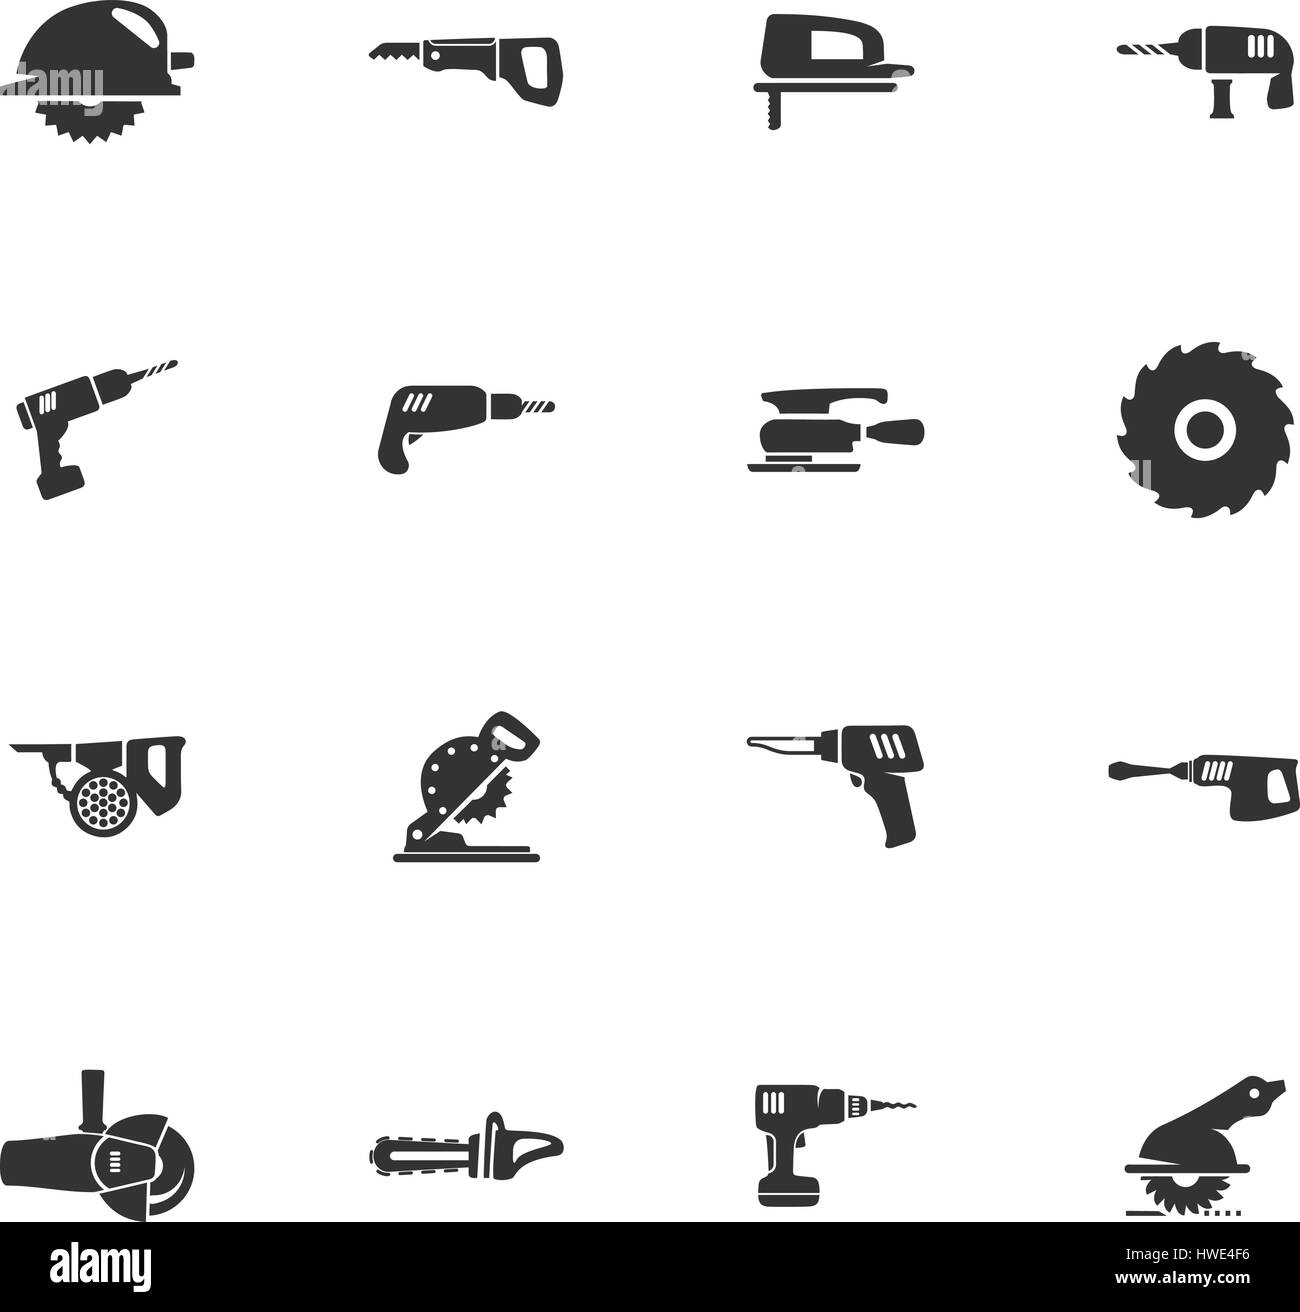 Power tools icon set for web sites and user interface - Stock Image